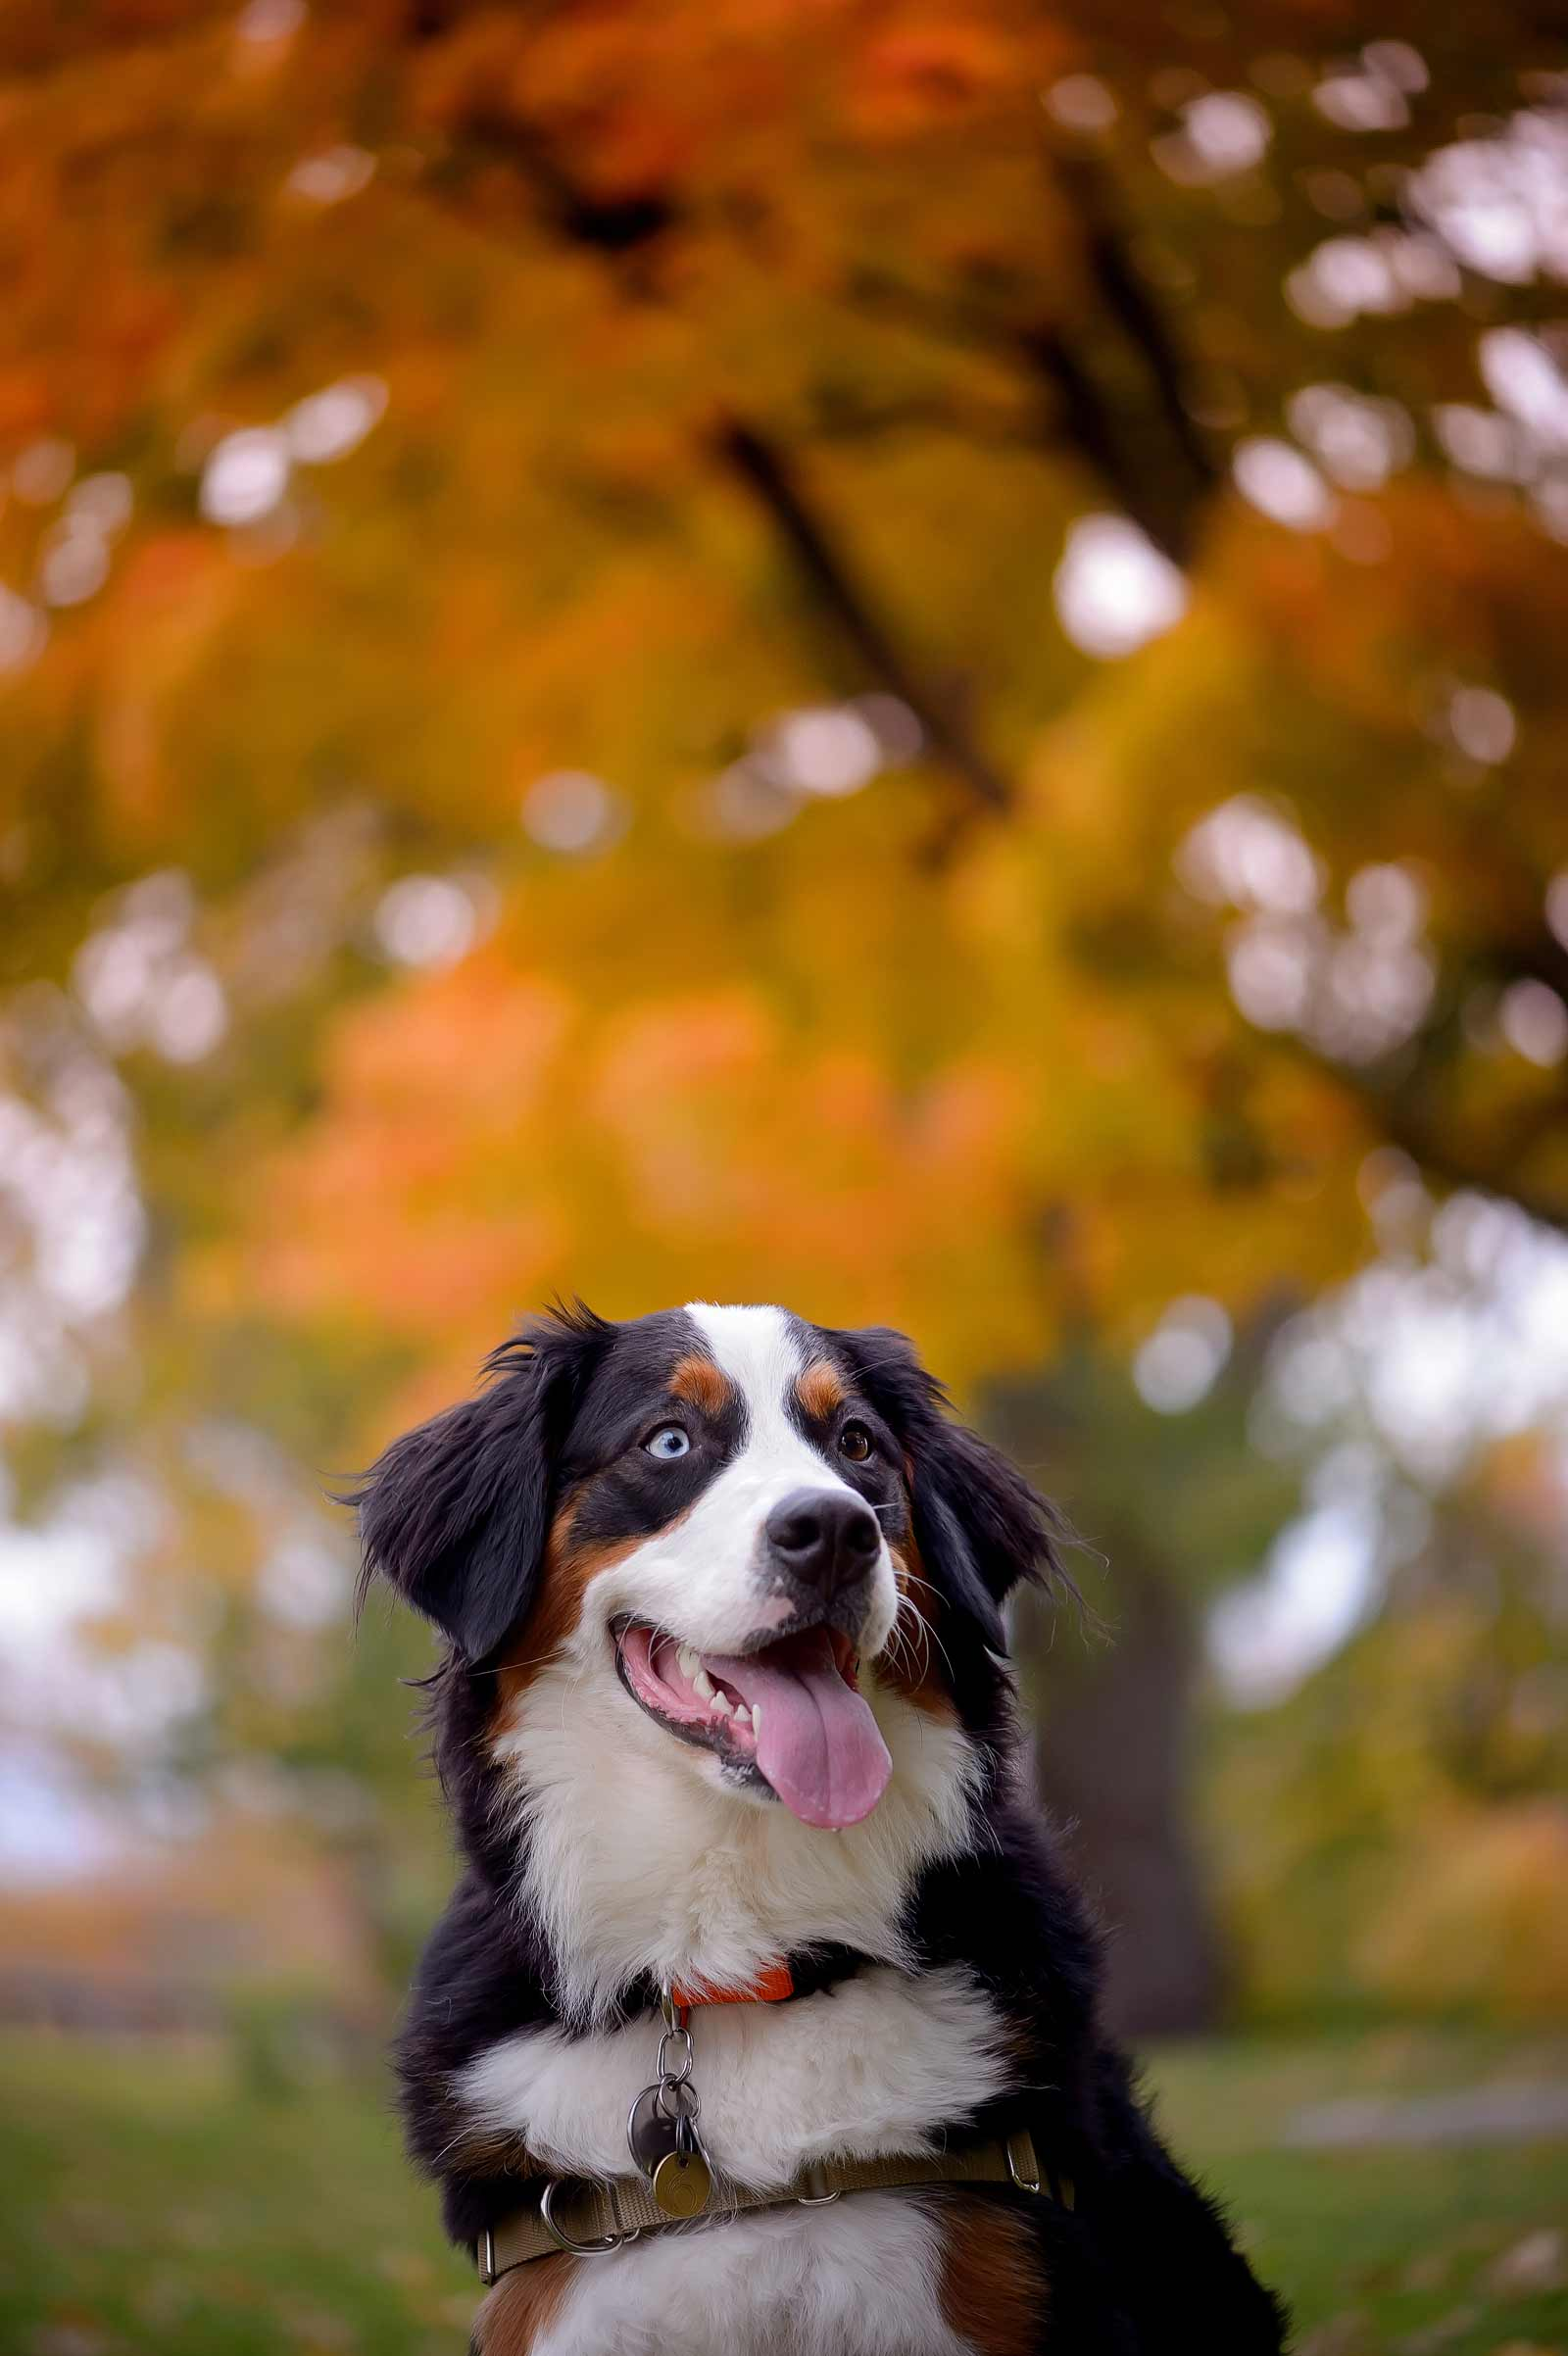 Ottawa Dog Photographer Princess Leia the Bernese mountain dog at Lemieux Island in the fall chewing on a stick